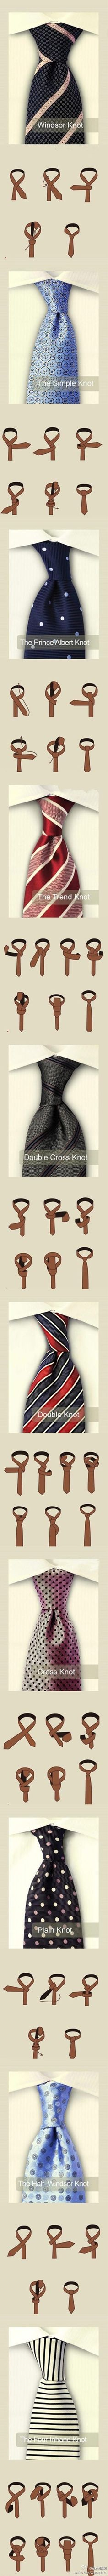 fyi How to tie a tie